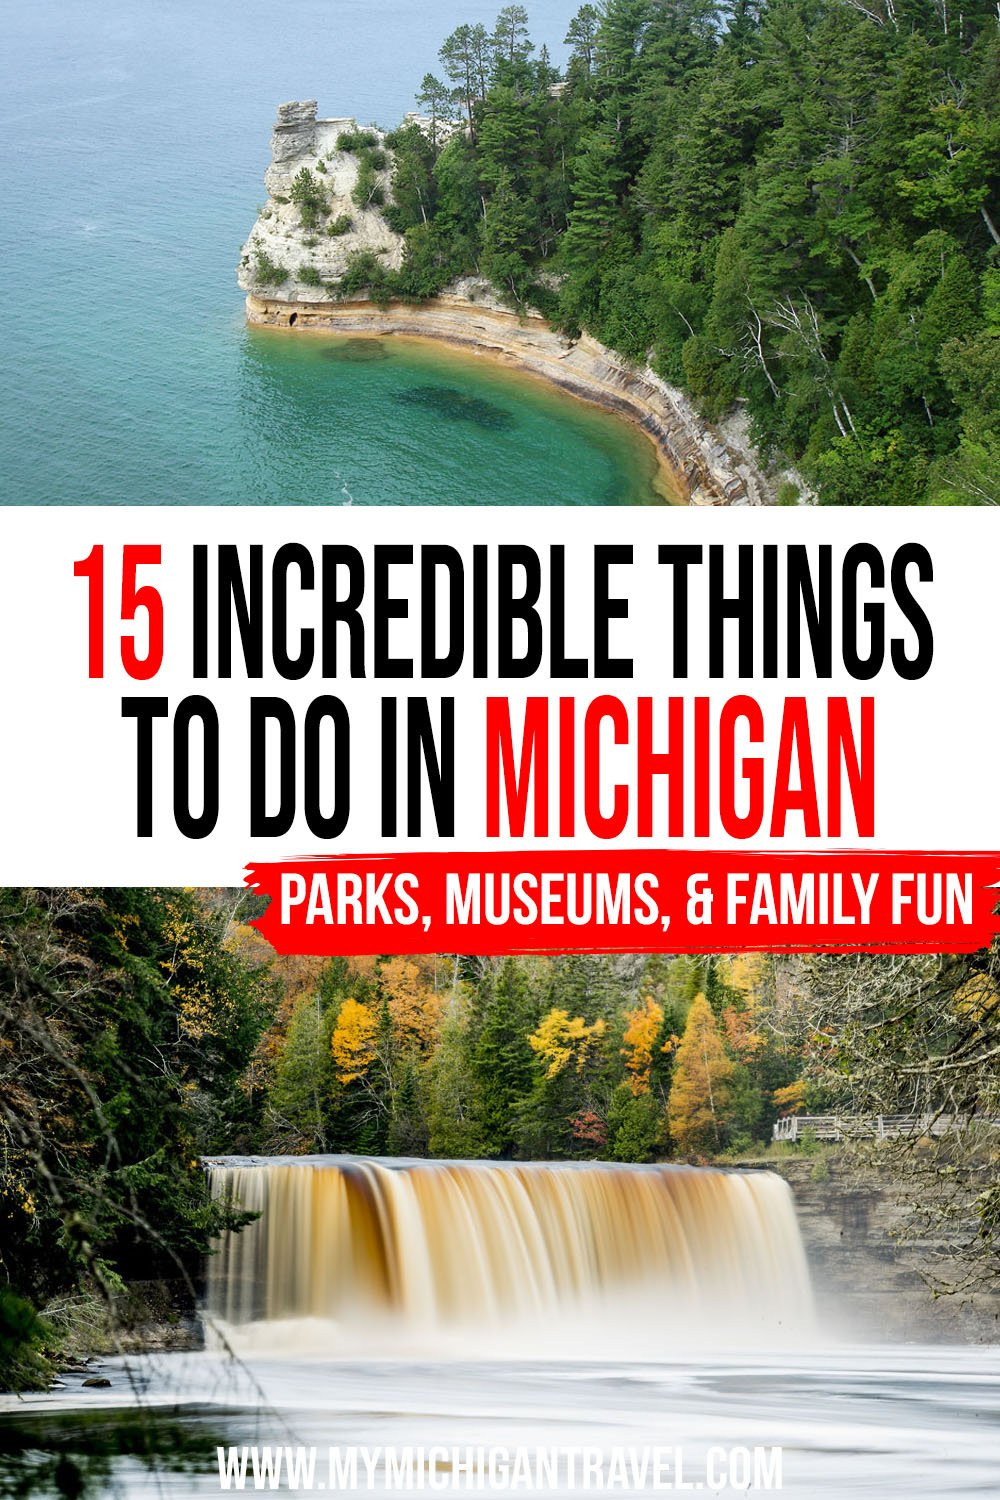 """Photo collage with a picture of a rock formation rising from Lake Superior's waters and a wide waterfall with brownish waters and text overlay reading, """"15 incredible things to do in Michigan - parks, museums, & family fun"""""""